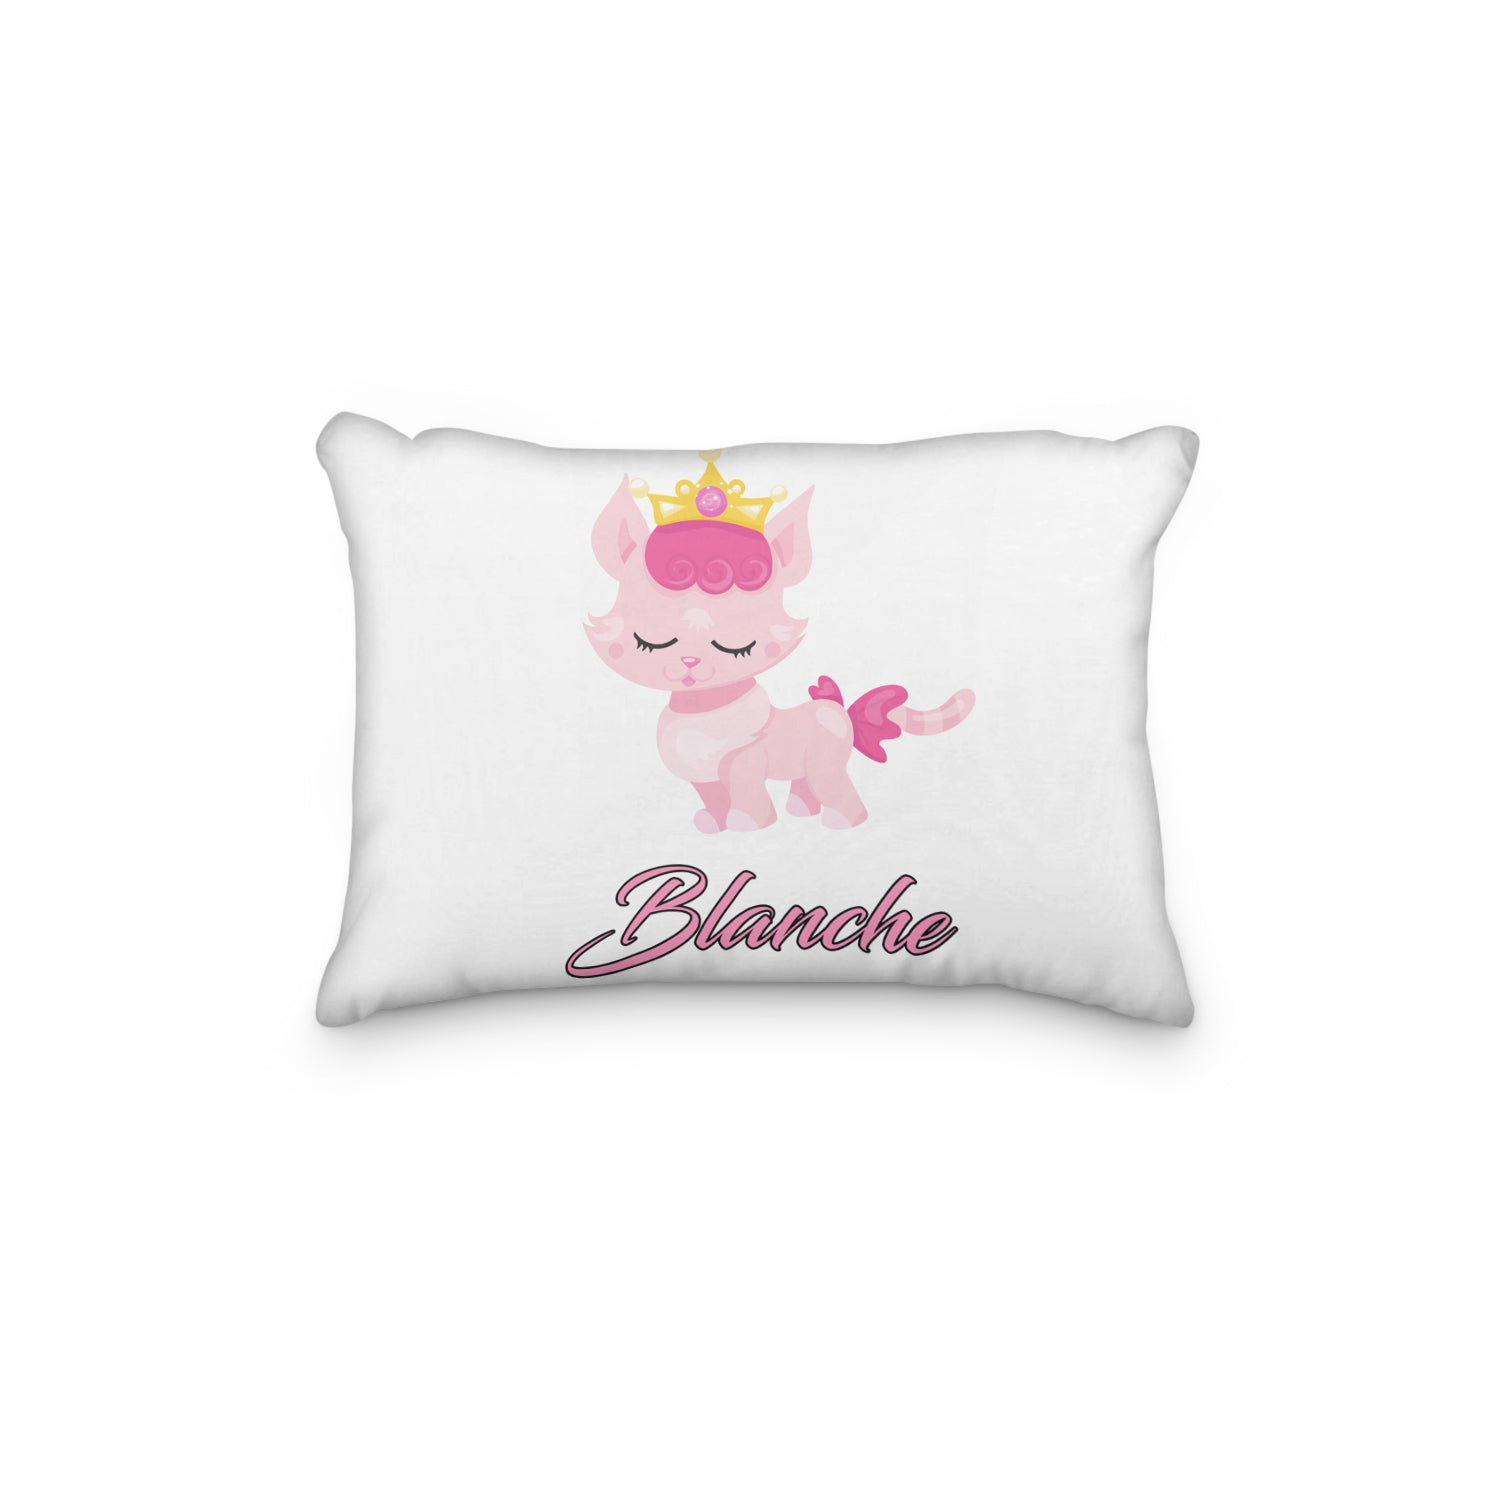 Cat Princess Pink Personalized Pillowcase - Incandescently